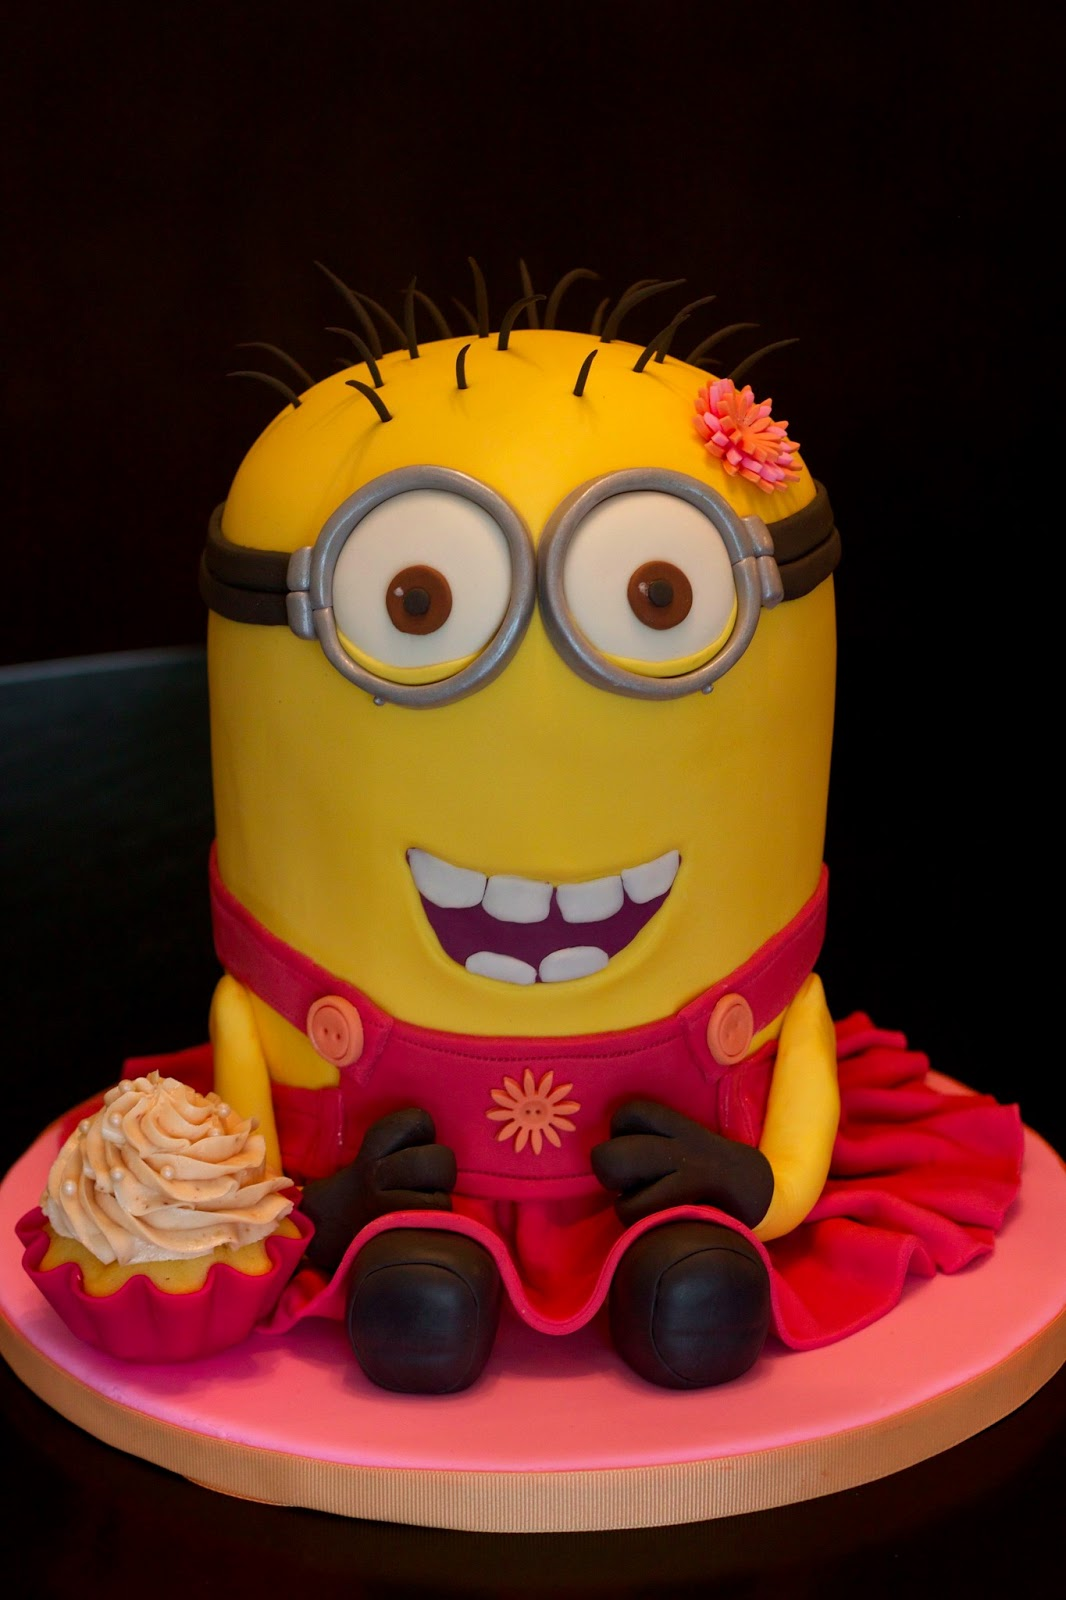 Sweet d cakes a despicably pretty minion cake - Cake decorations minions ...